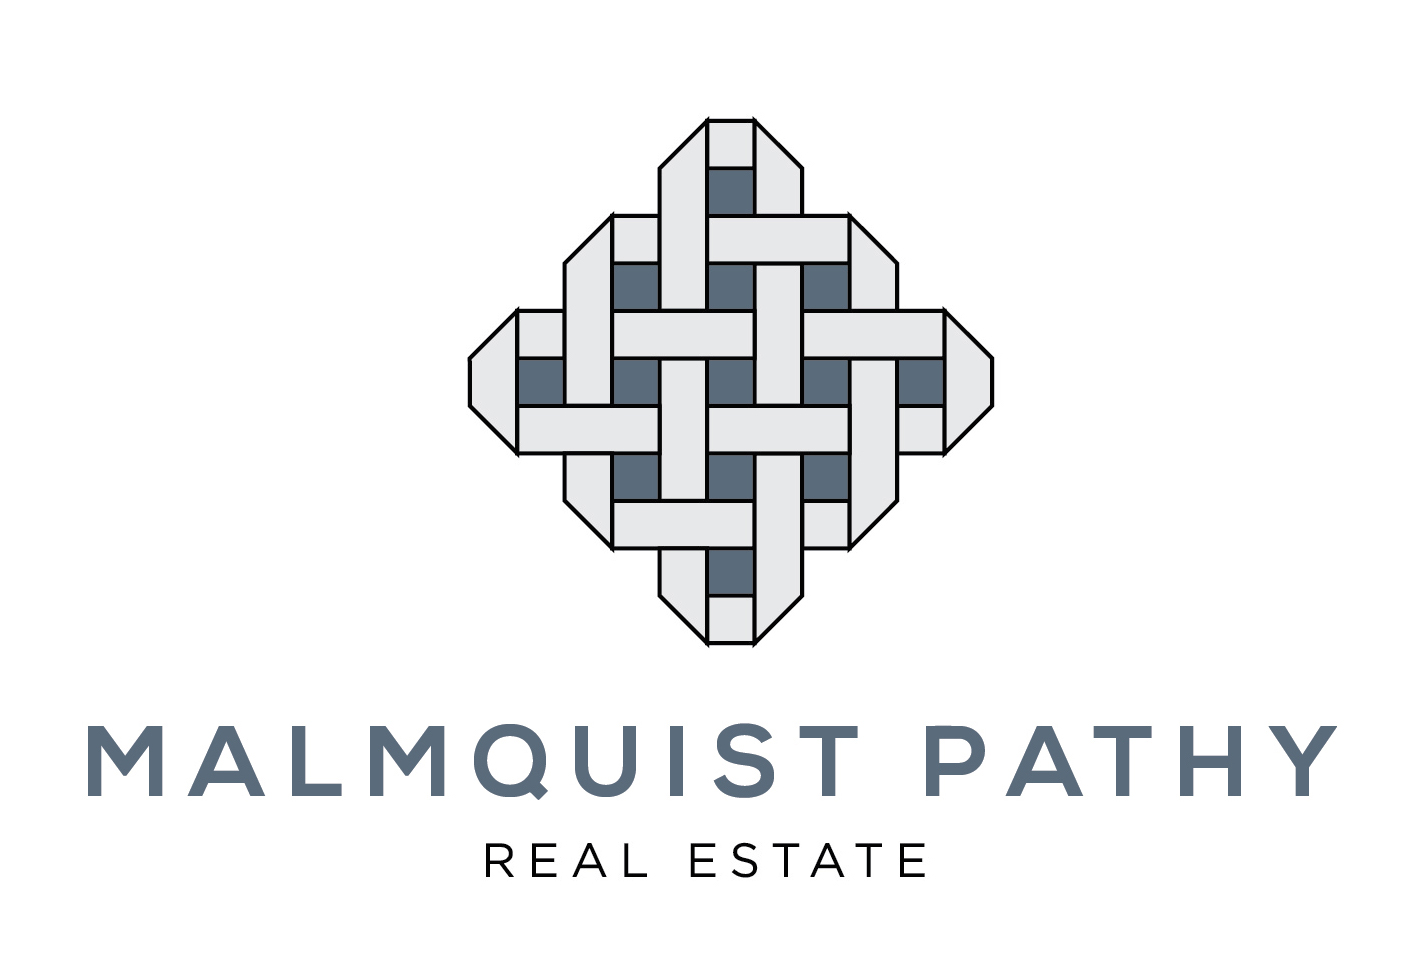 Malmquist Pathy Real Estate